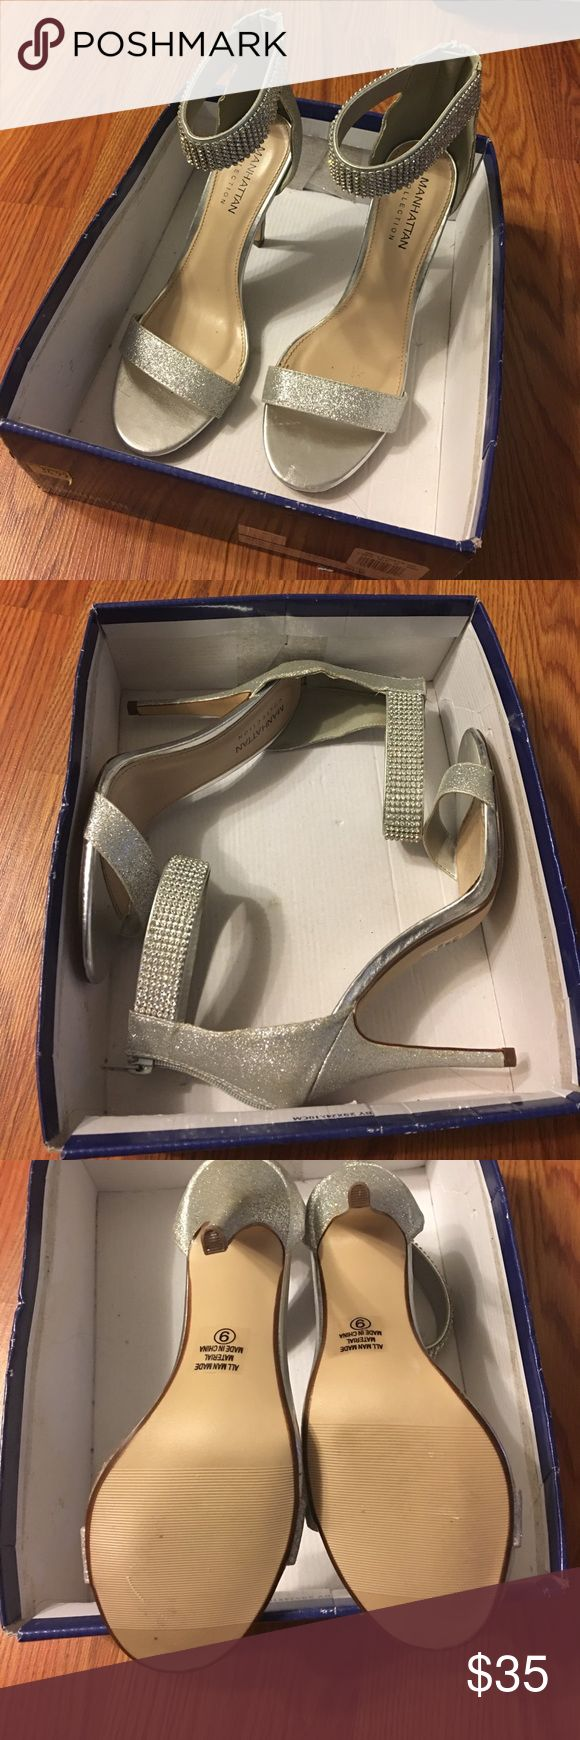 Silver peep toe heels Worn once to a wedding; almost perfect condition; missing two jewels as shown in picture Manhattan Collection Shoes Heels